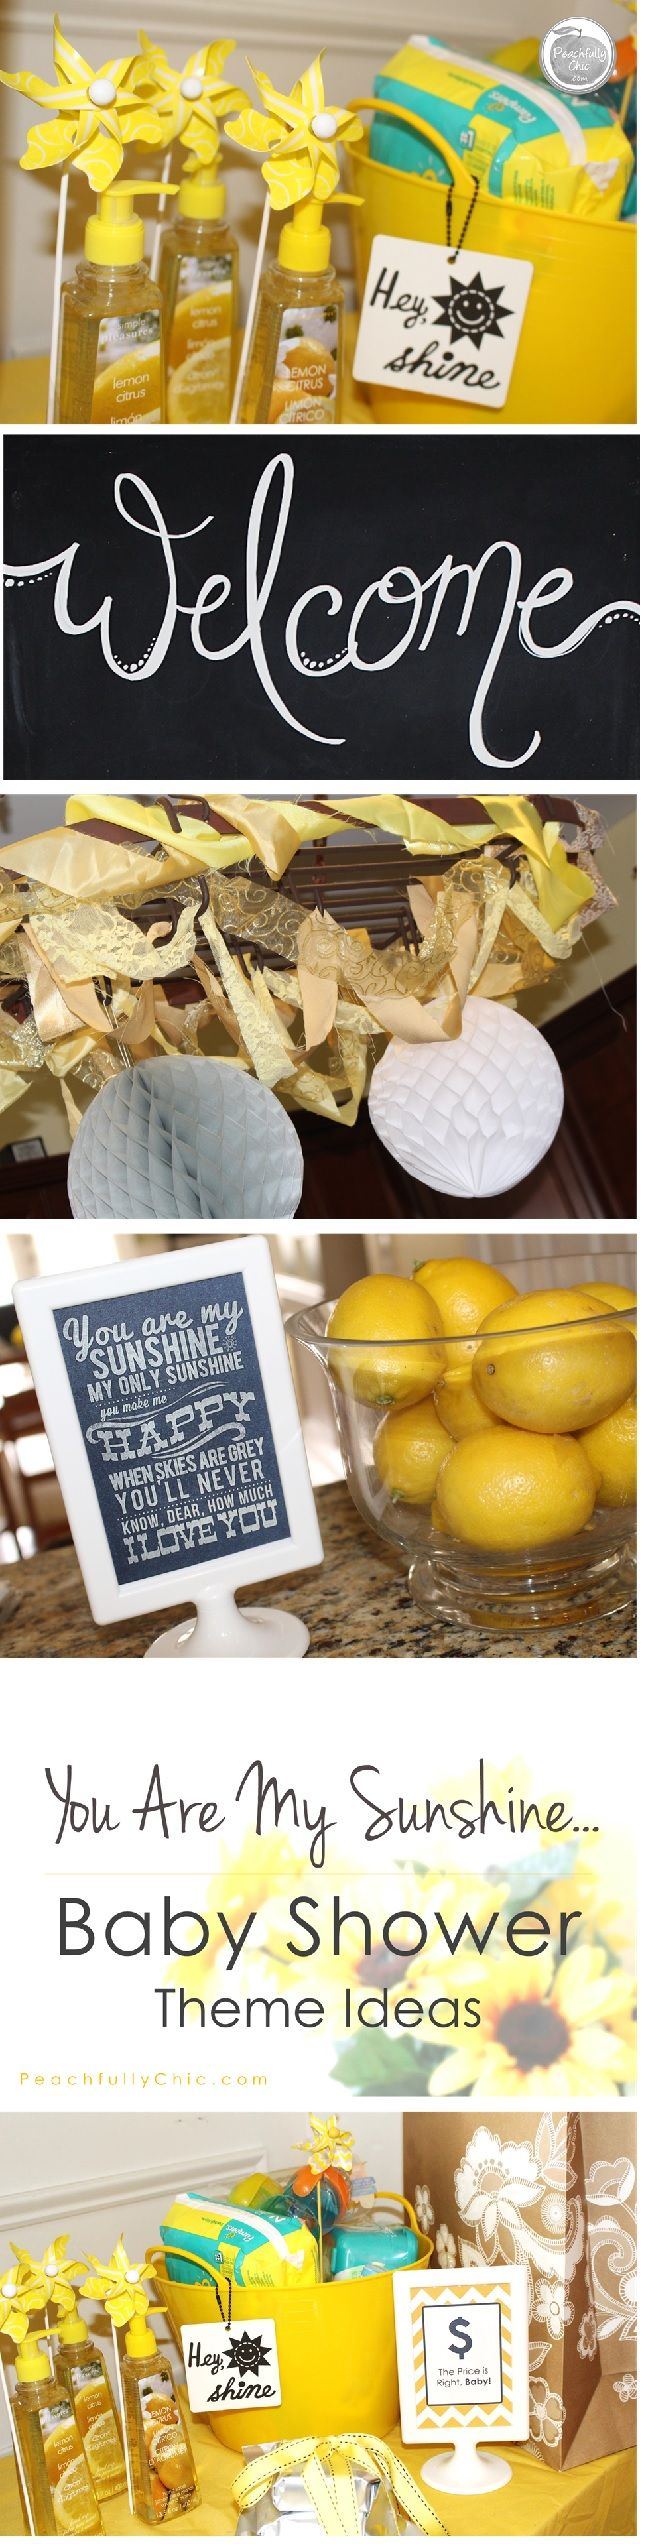 "All the decor inspiration and food ideas to host the perfect ""You Are My Sunshine"" Baby Shower themed party. Decor, Games, Food, & More!"